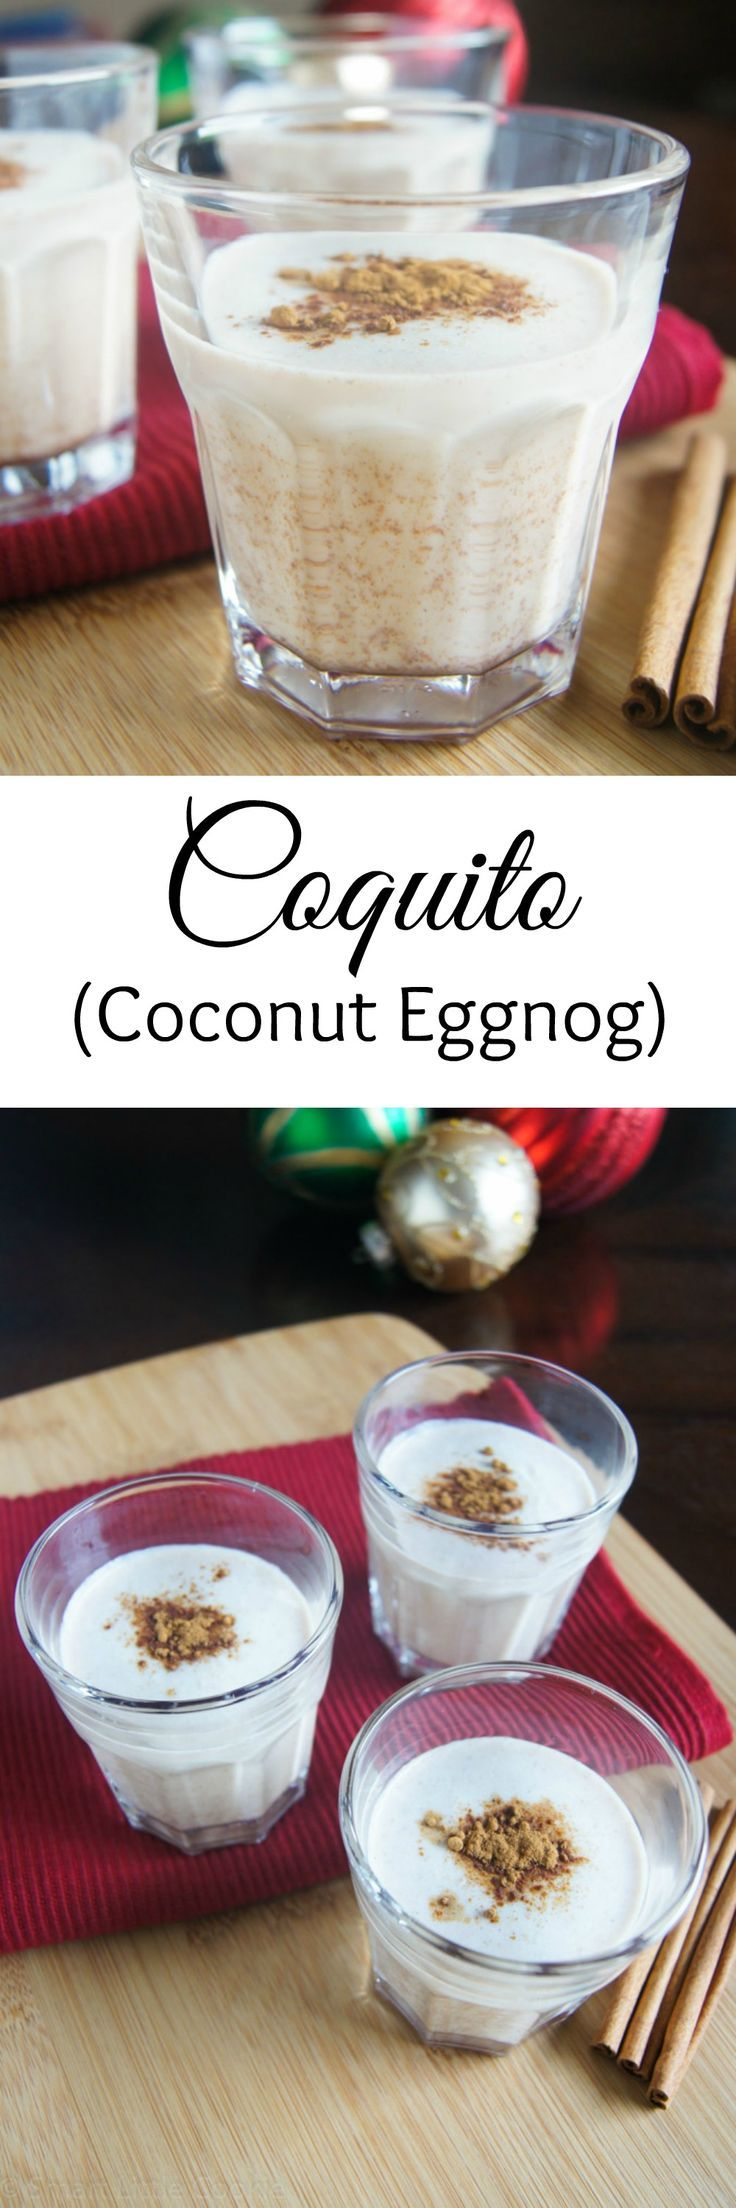 Coquito (Coconut Eggnog) | SmartLittleCookie.net  A Puerto Rican holiday cocktail made with coconut milk and traditionally served during the Christmas holidays.